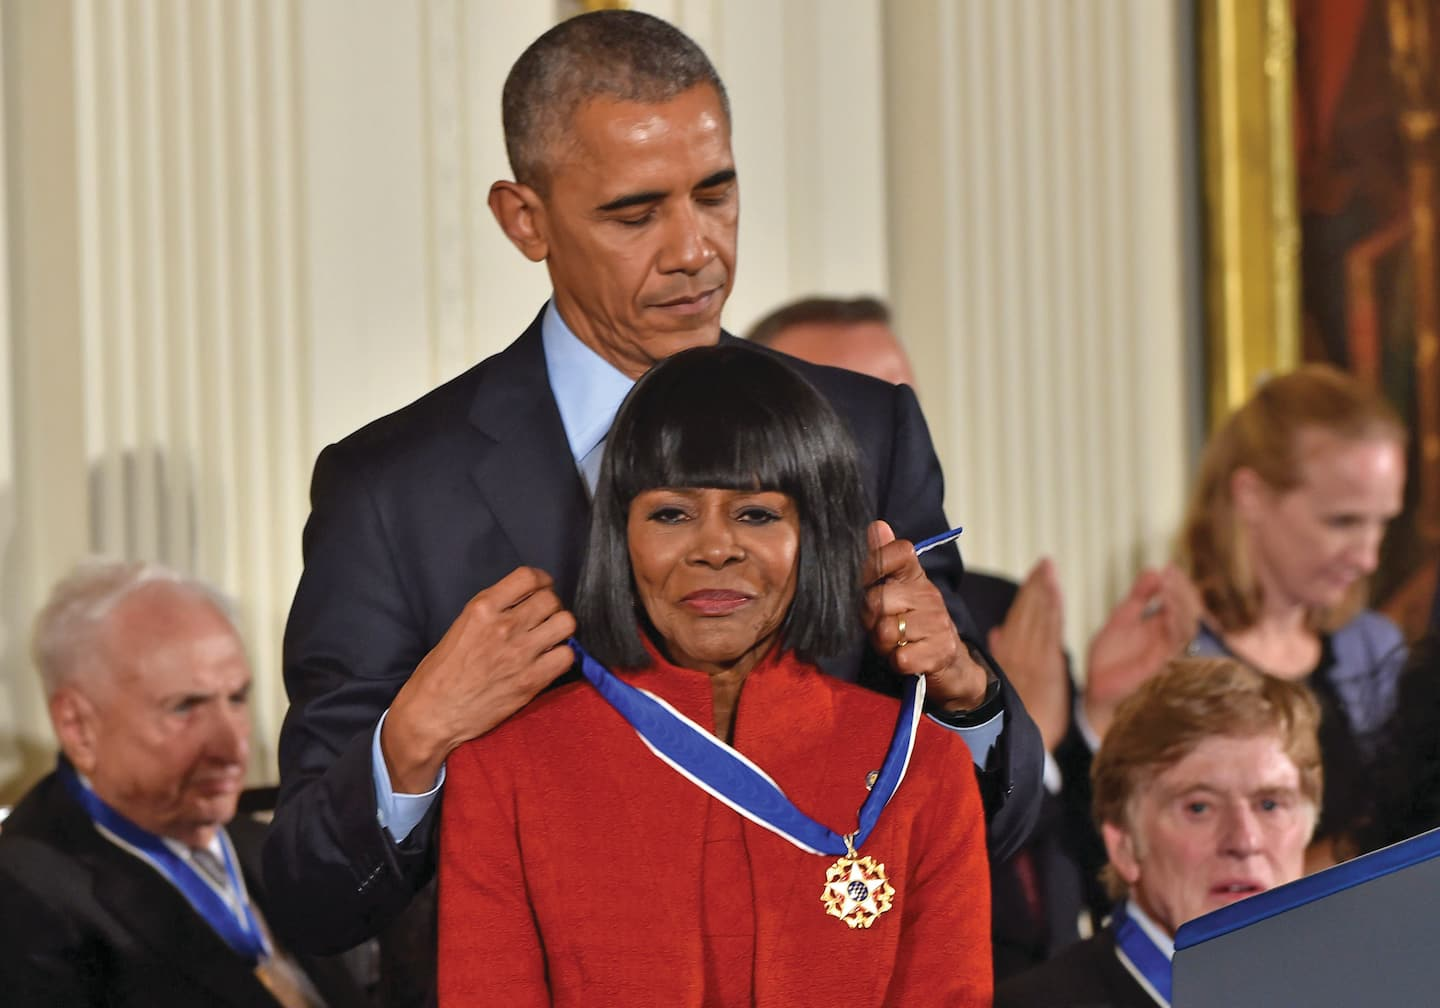 Cicely Tyson embodied what it takes to be a great actor: instinct and intention